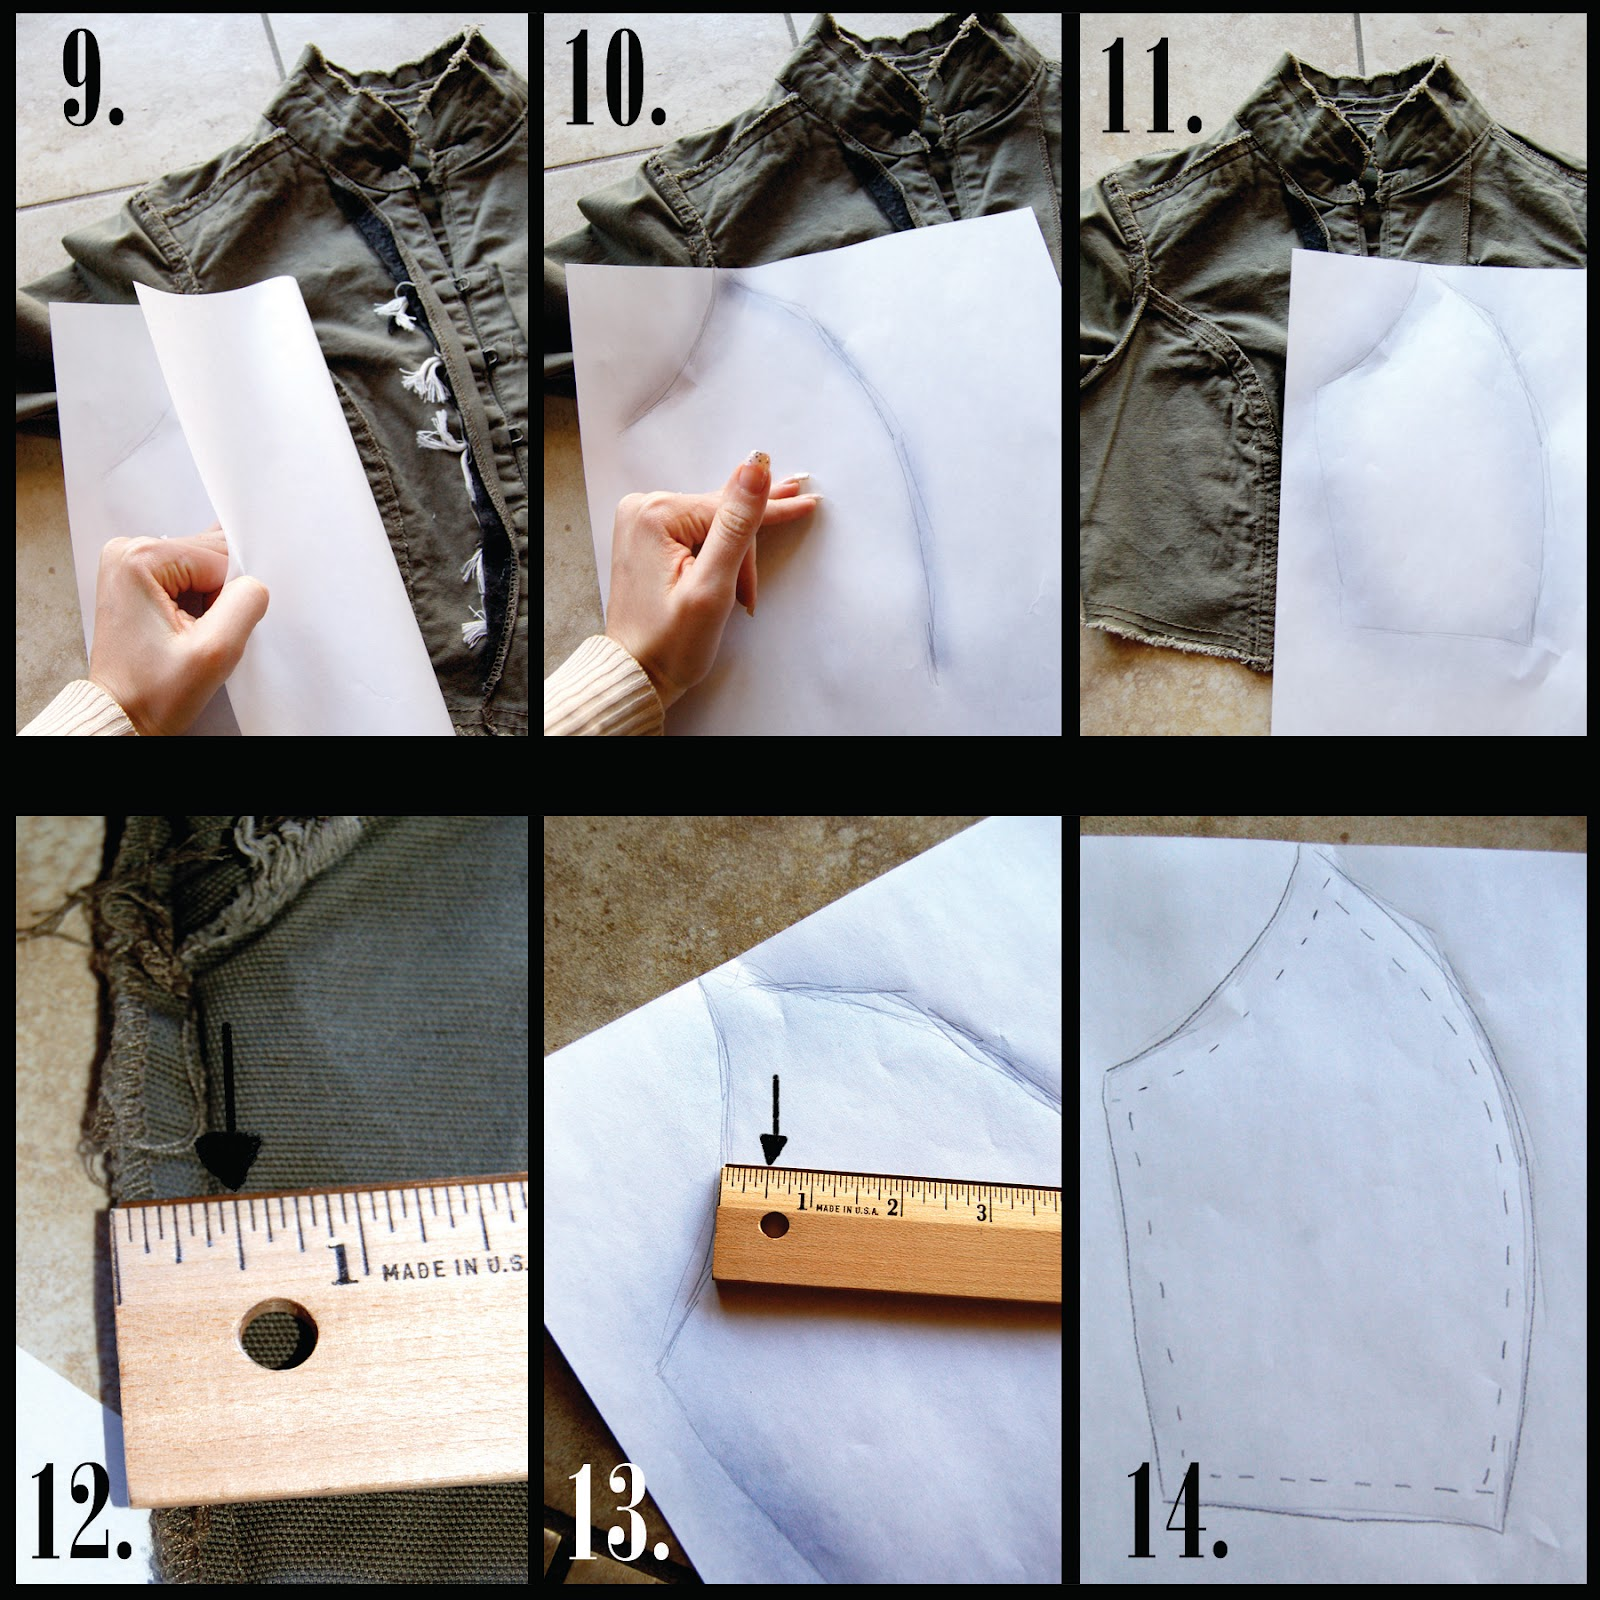 Your own sewing blocks make your own sewing blocks jeuxipadfo Image collections